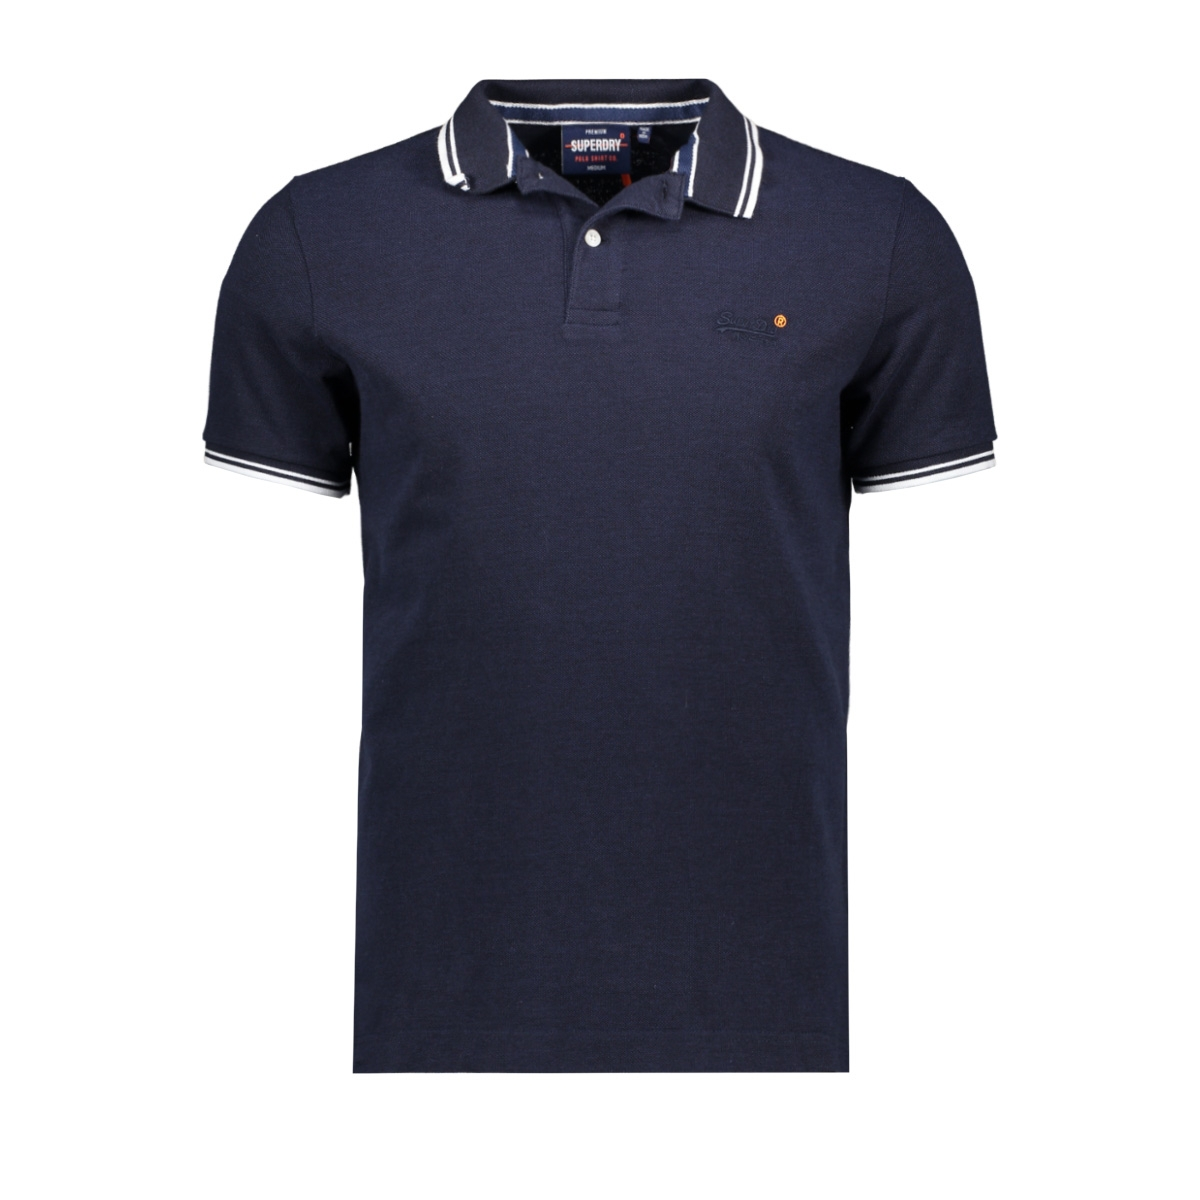 classic poolside pique polo m1110057a superdry polo atlantic navy twist